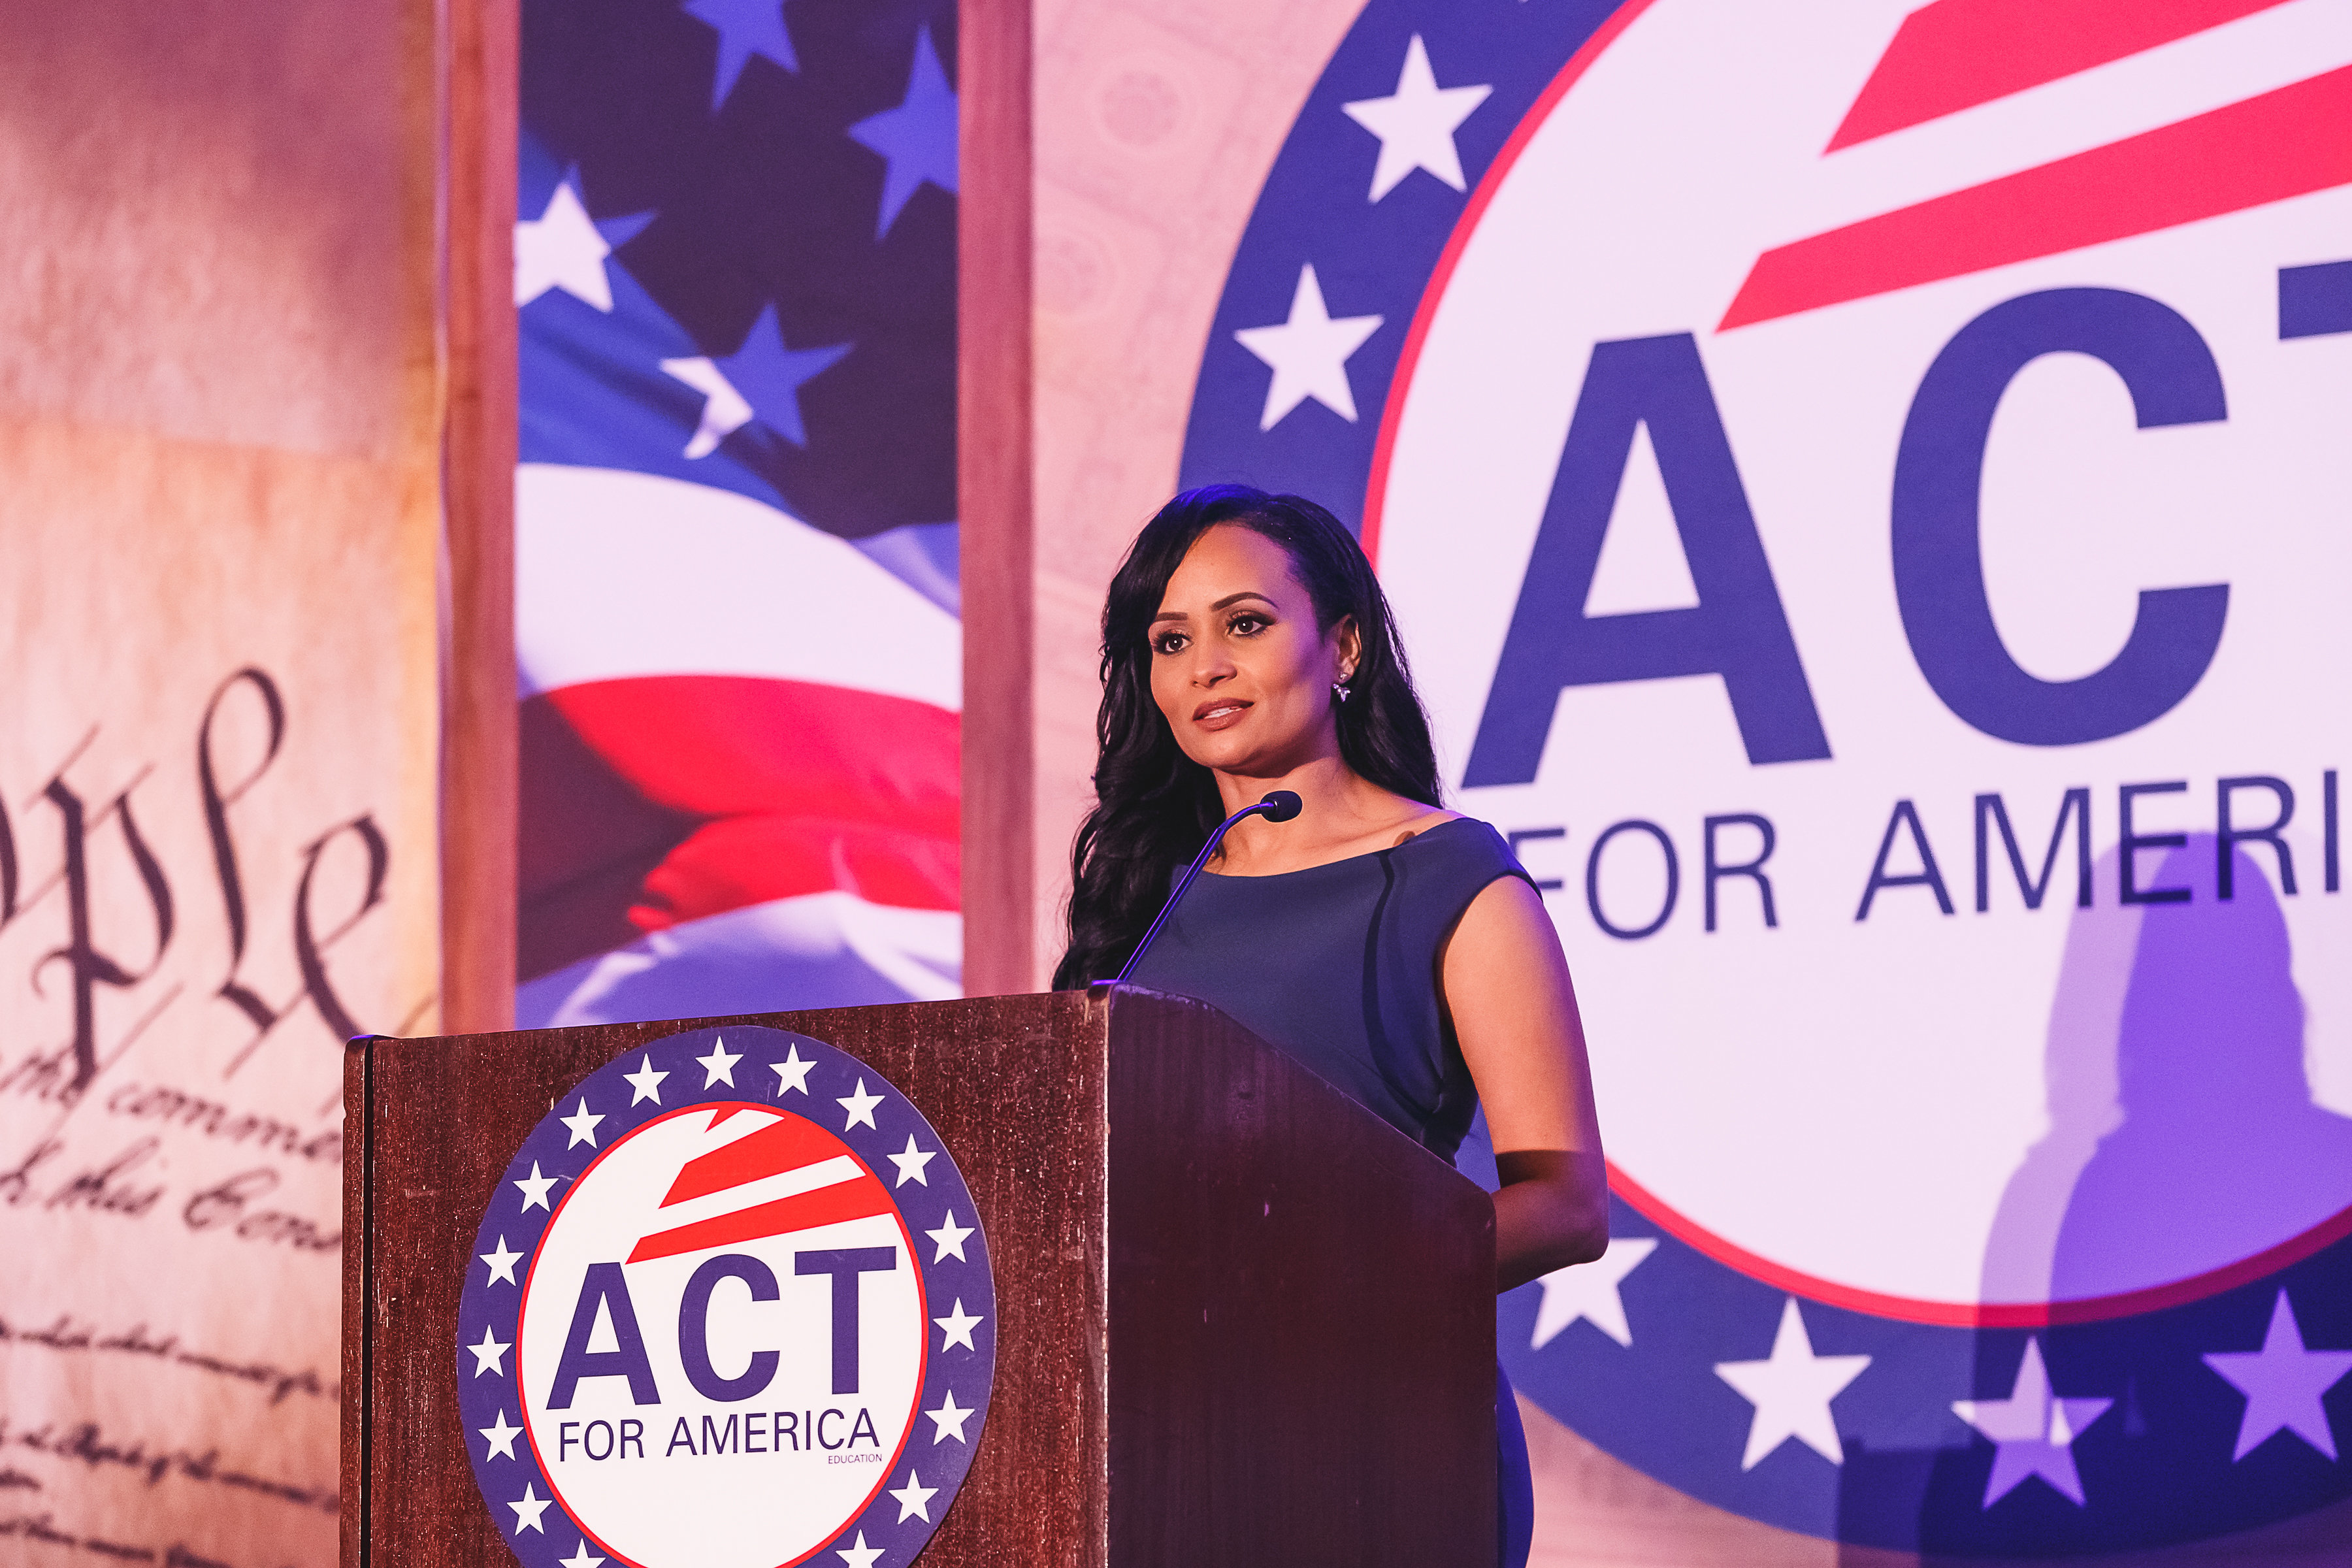 ACT for America